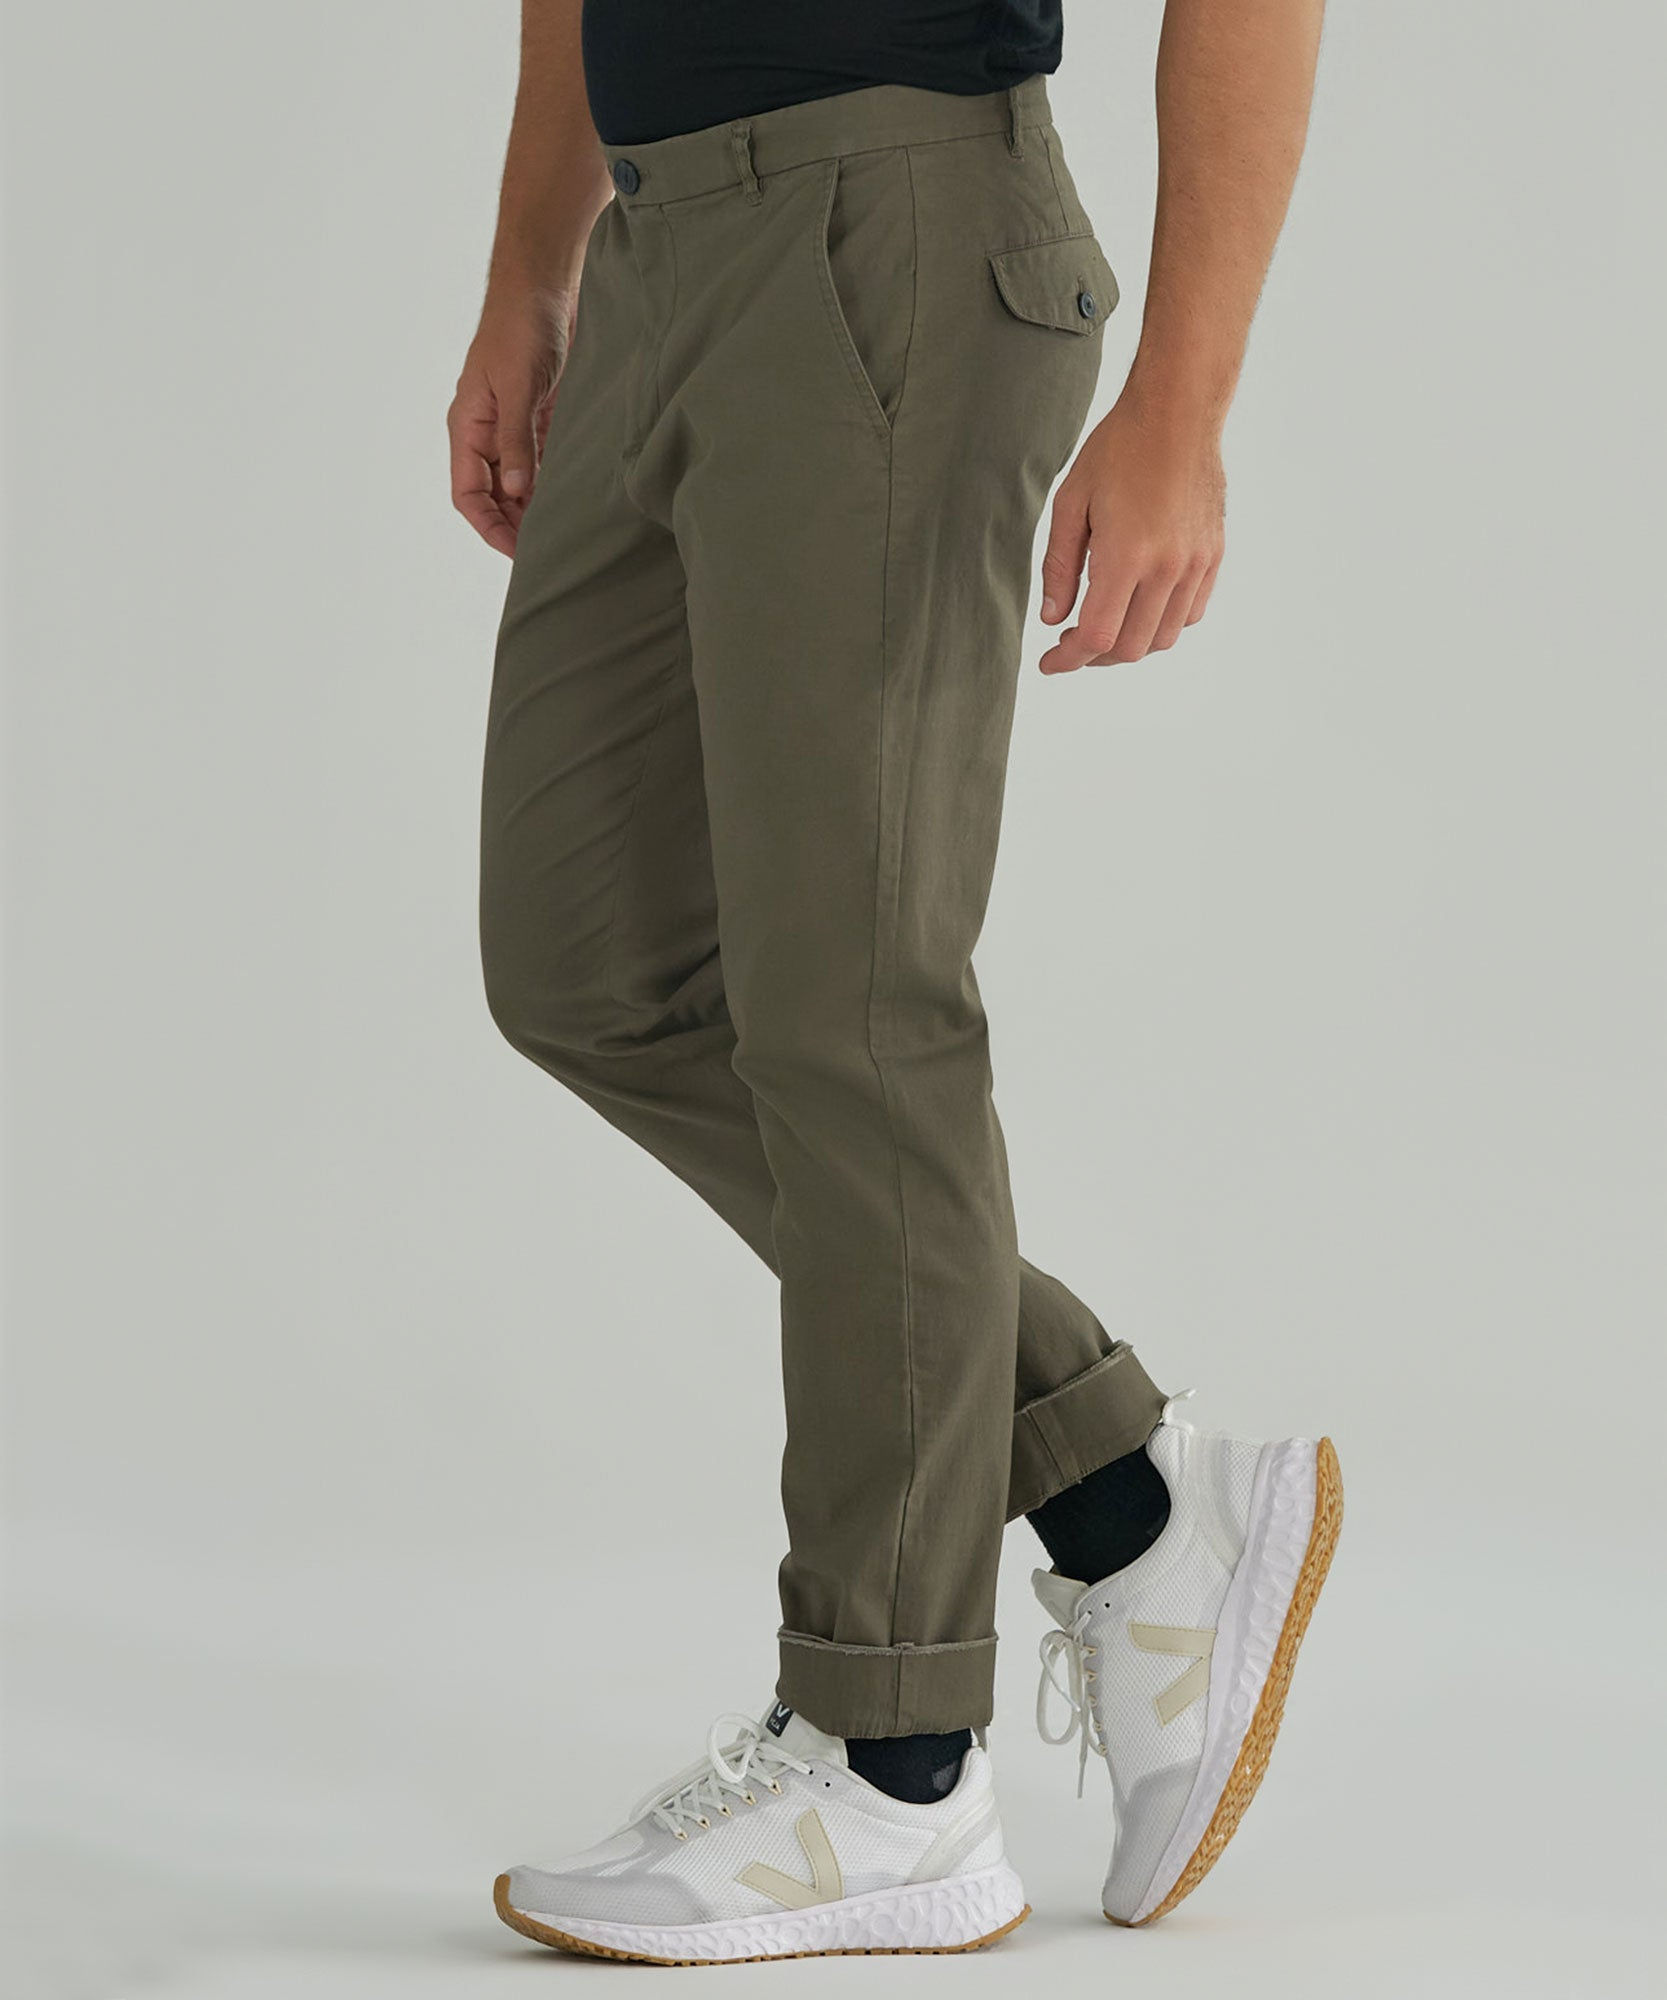 Army Stretch Cotton Garment Wash Slim Pants - Men's Casual Pants by ATM Anthony Thomas Melillo